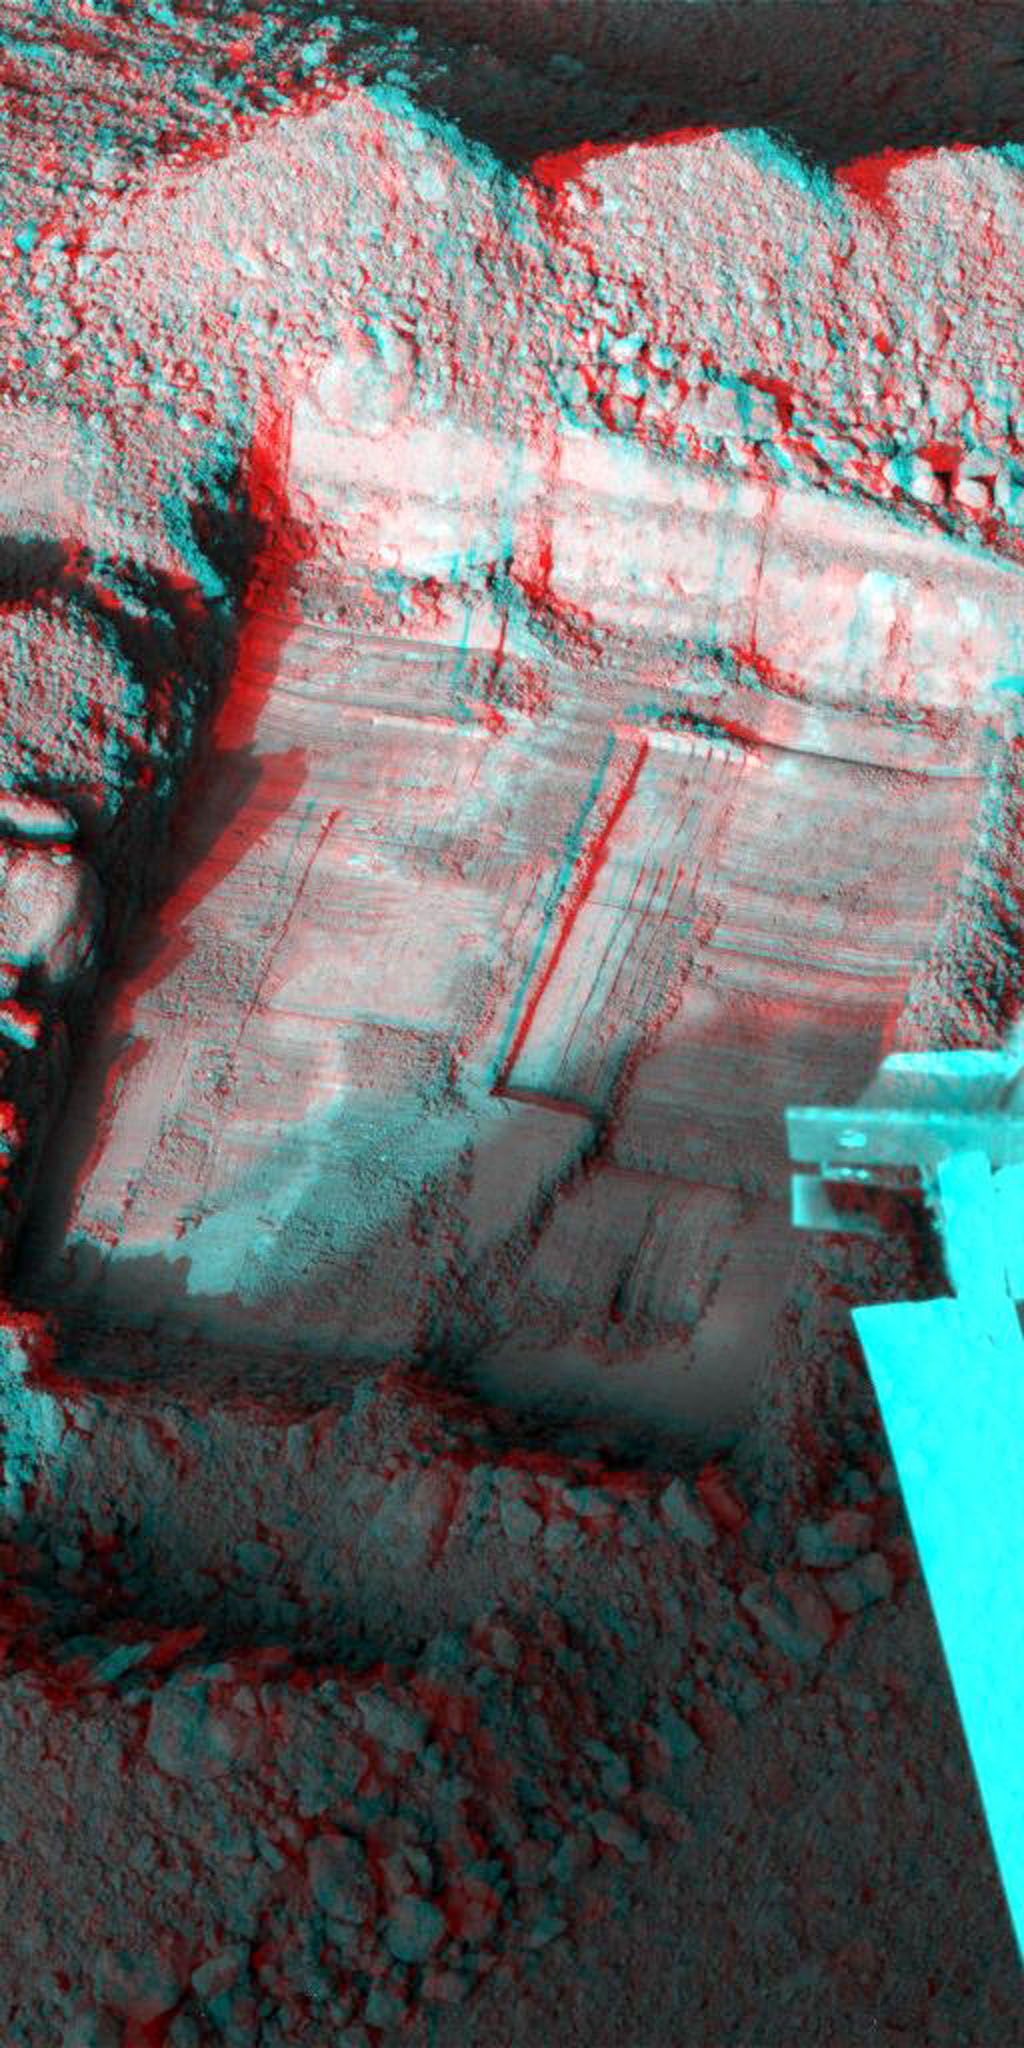 This anaglyph, acquired by NASA's Phoenix Lander shows a stereoscopic 3D view of a trench informally called 'Snow White' dug by Phoenix's Robotic Arm. 3D glasses are necessary to view this image.